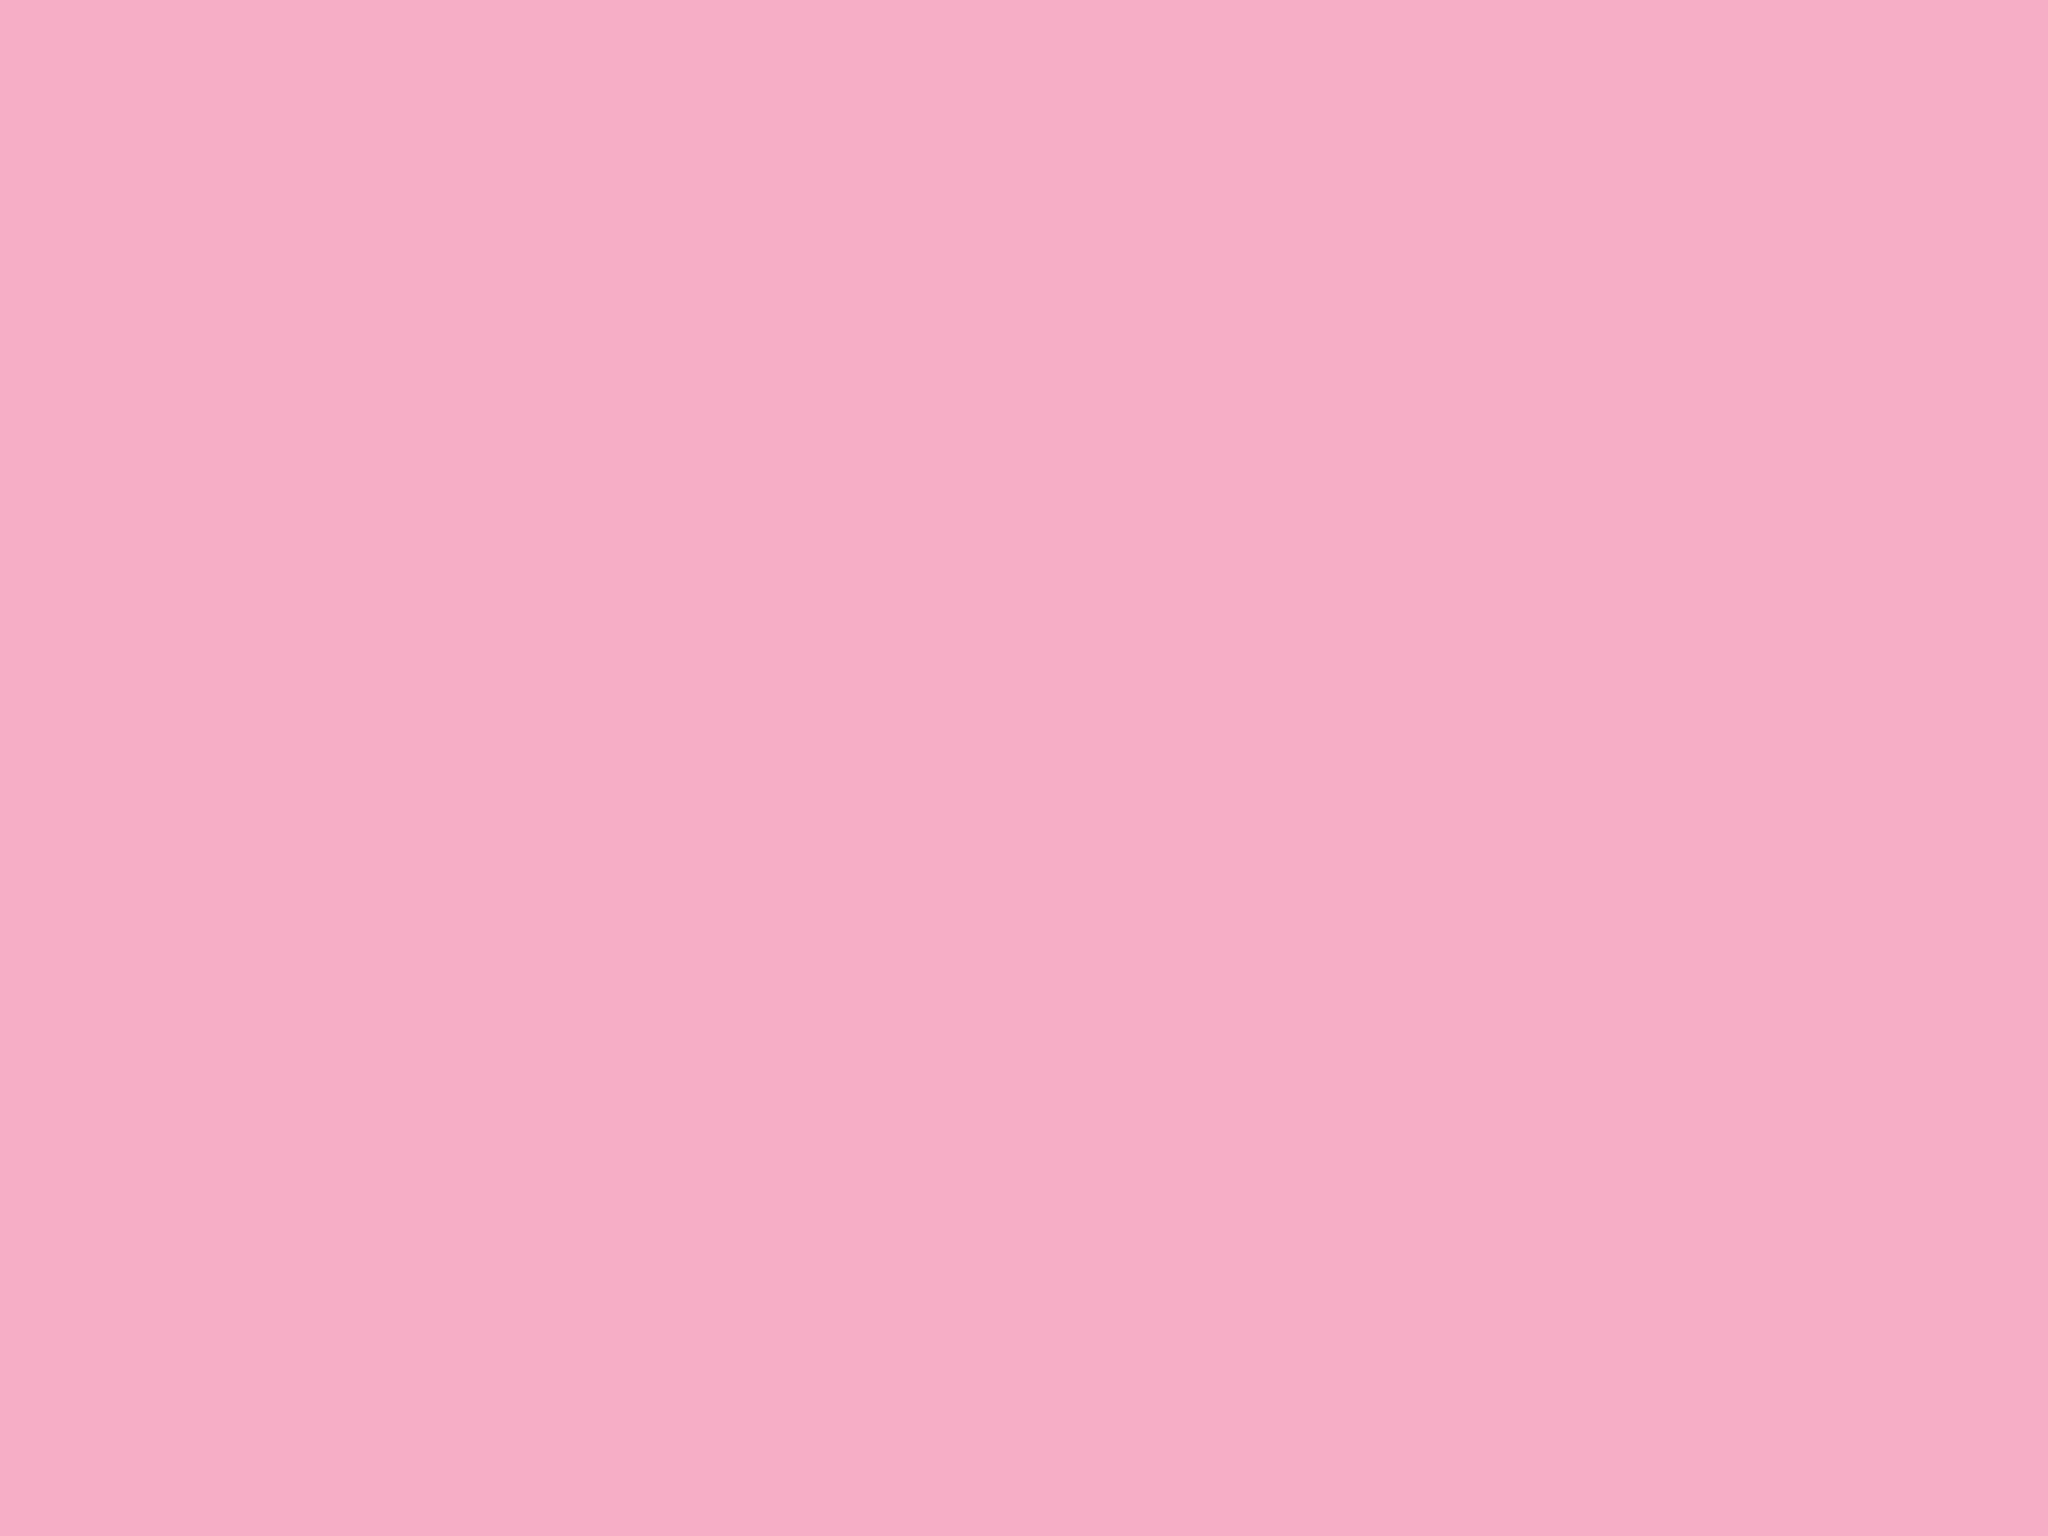 2048x1536 Nadeshiko Pink Solid Color Background